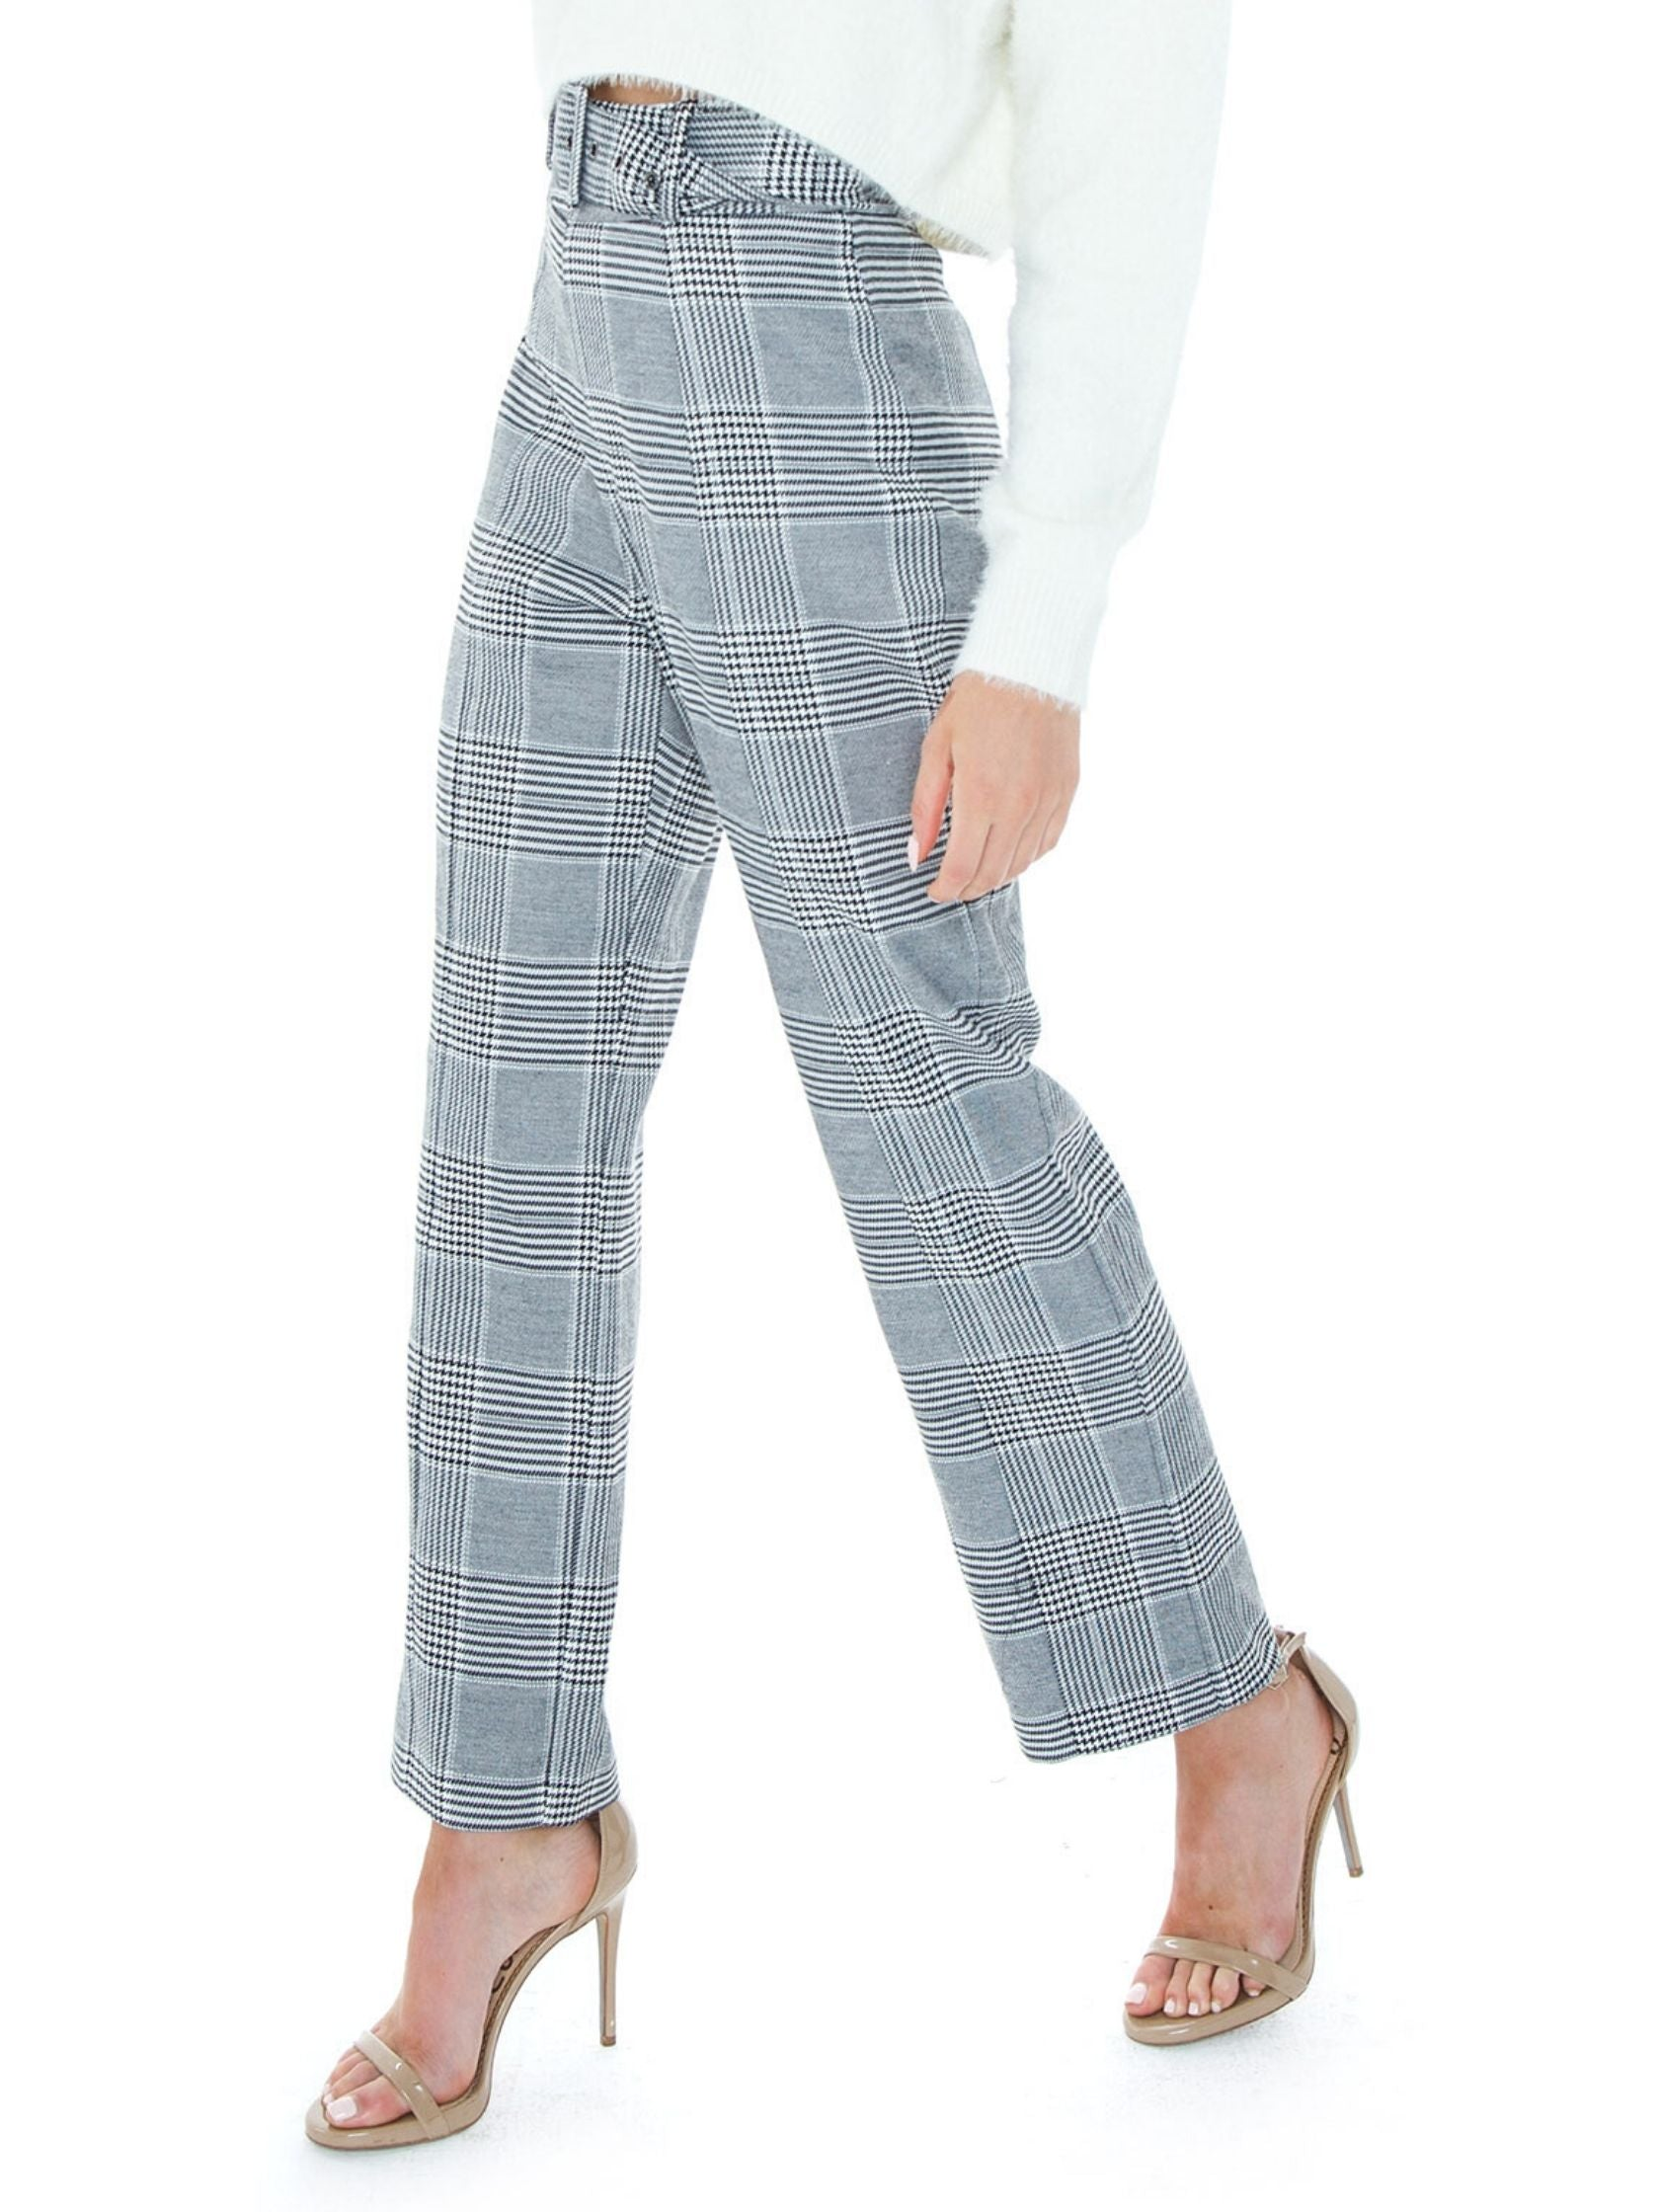 Women wearing a pants rental from BARDOT called Belted Check Pant